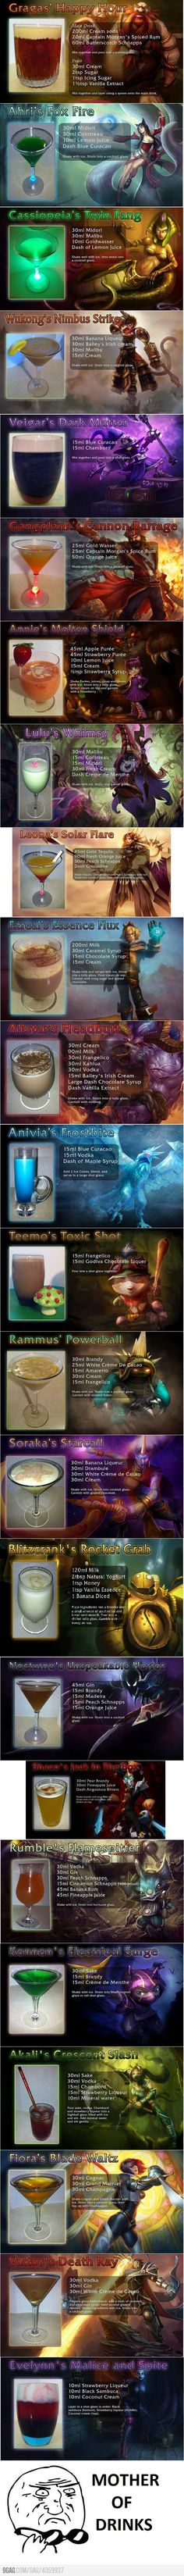 League of Legends drinks!